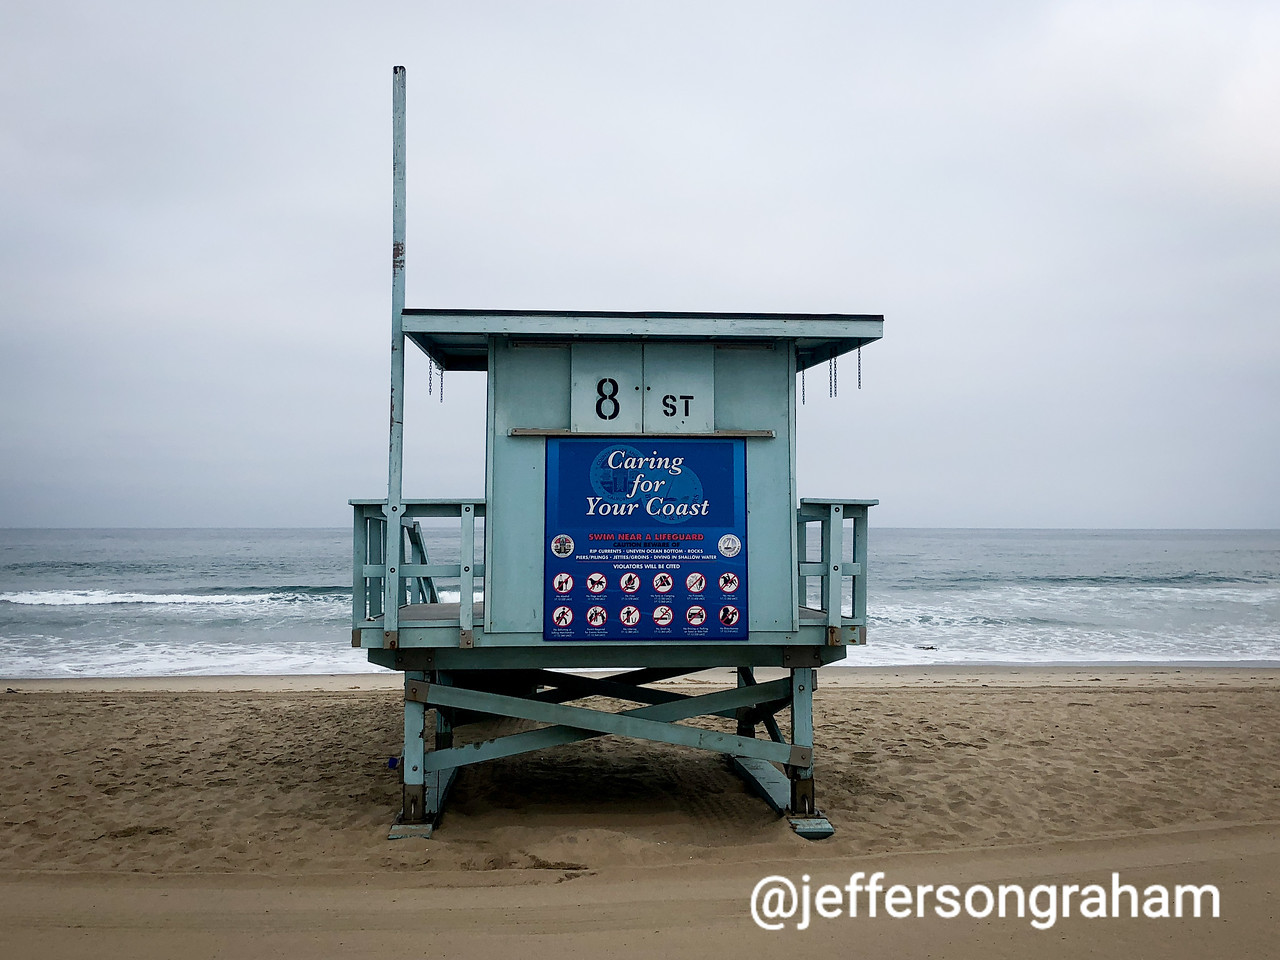 The 8th Street lifeguard station, shot from directly behind